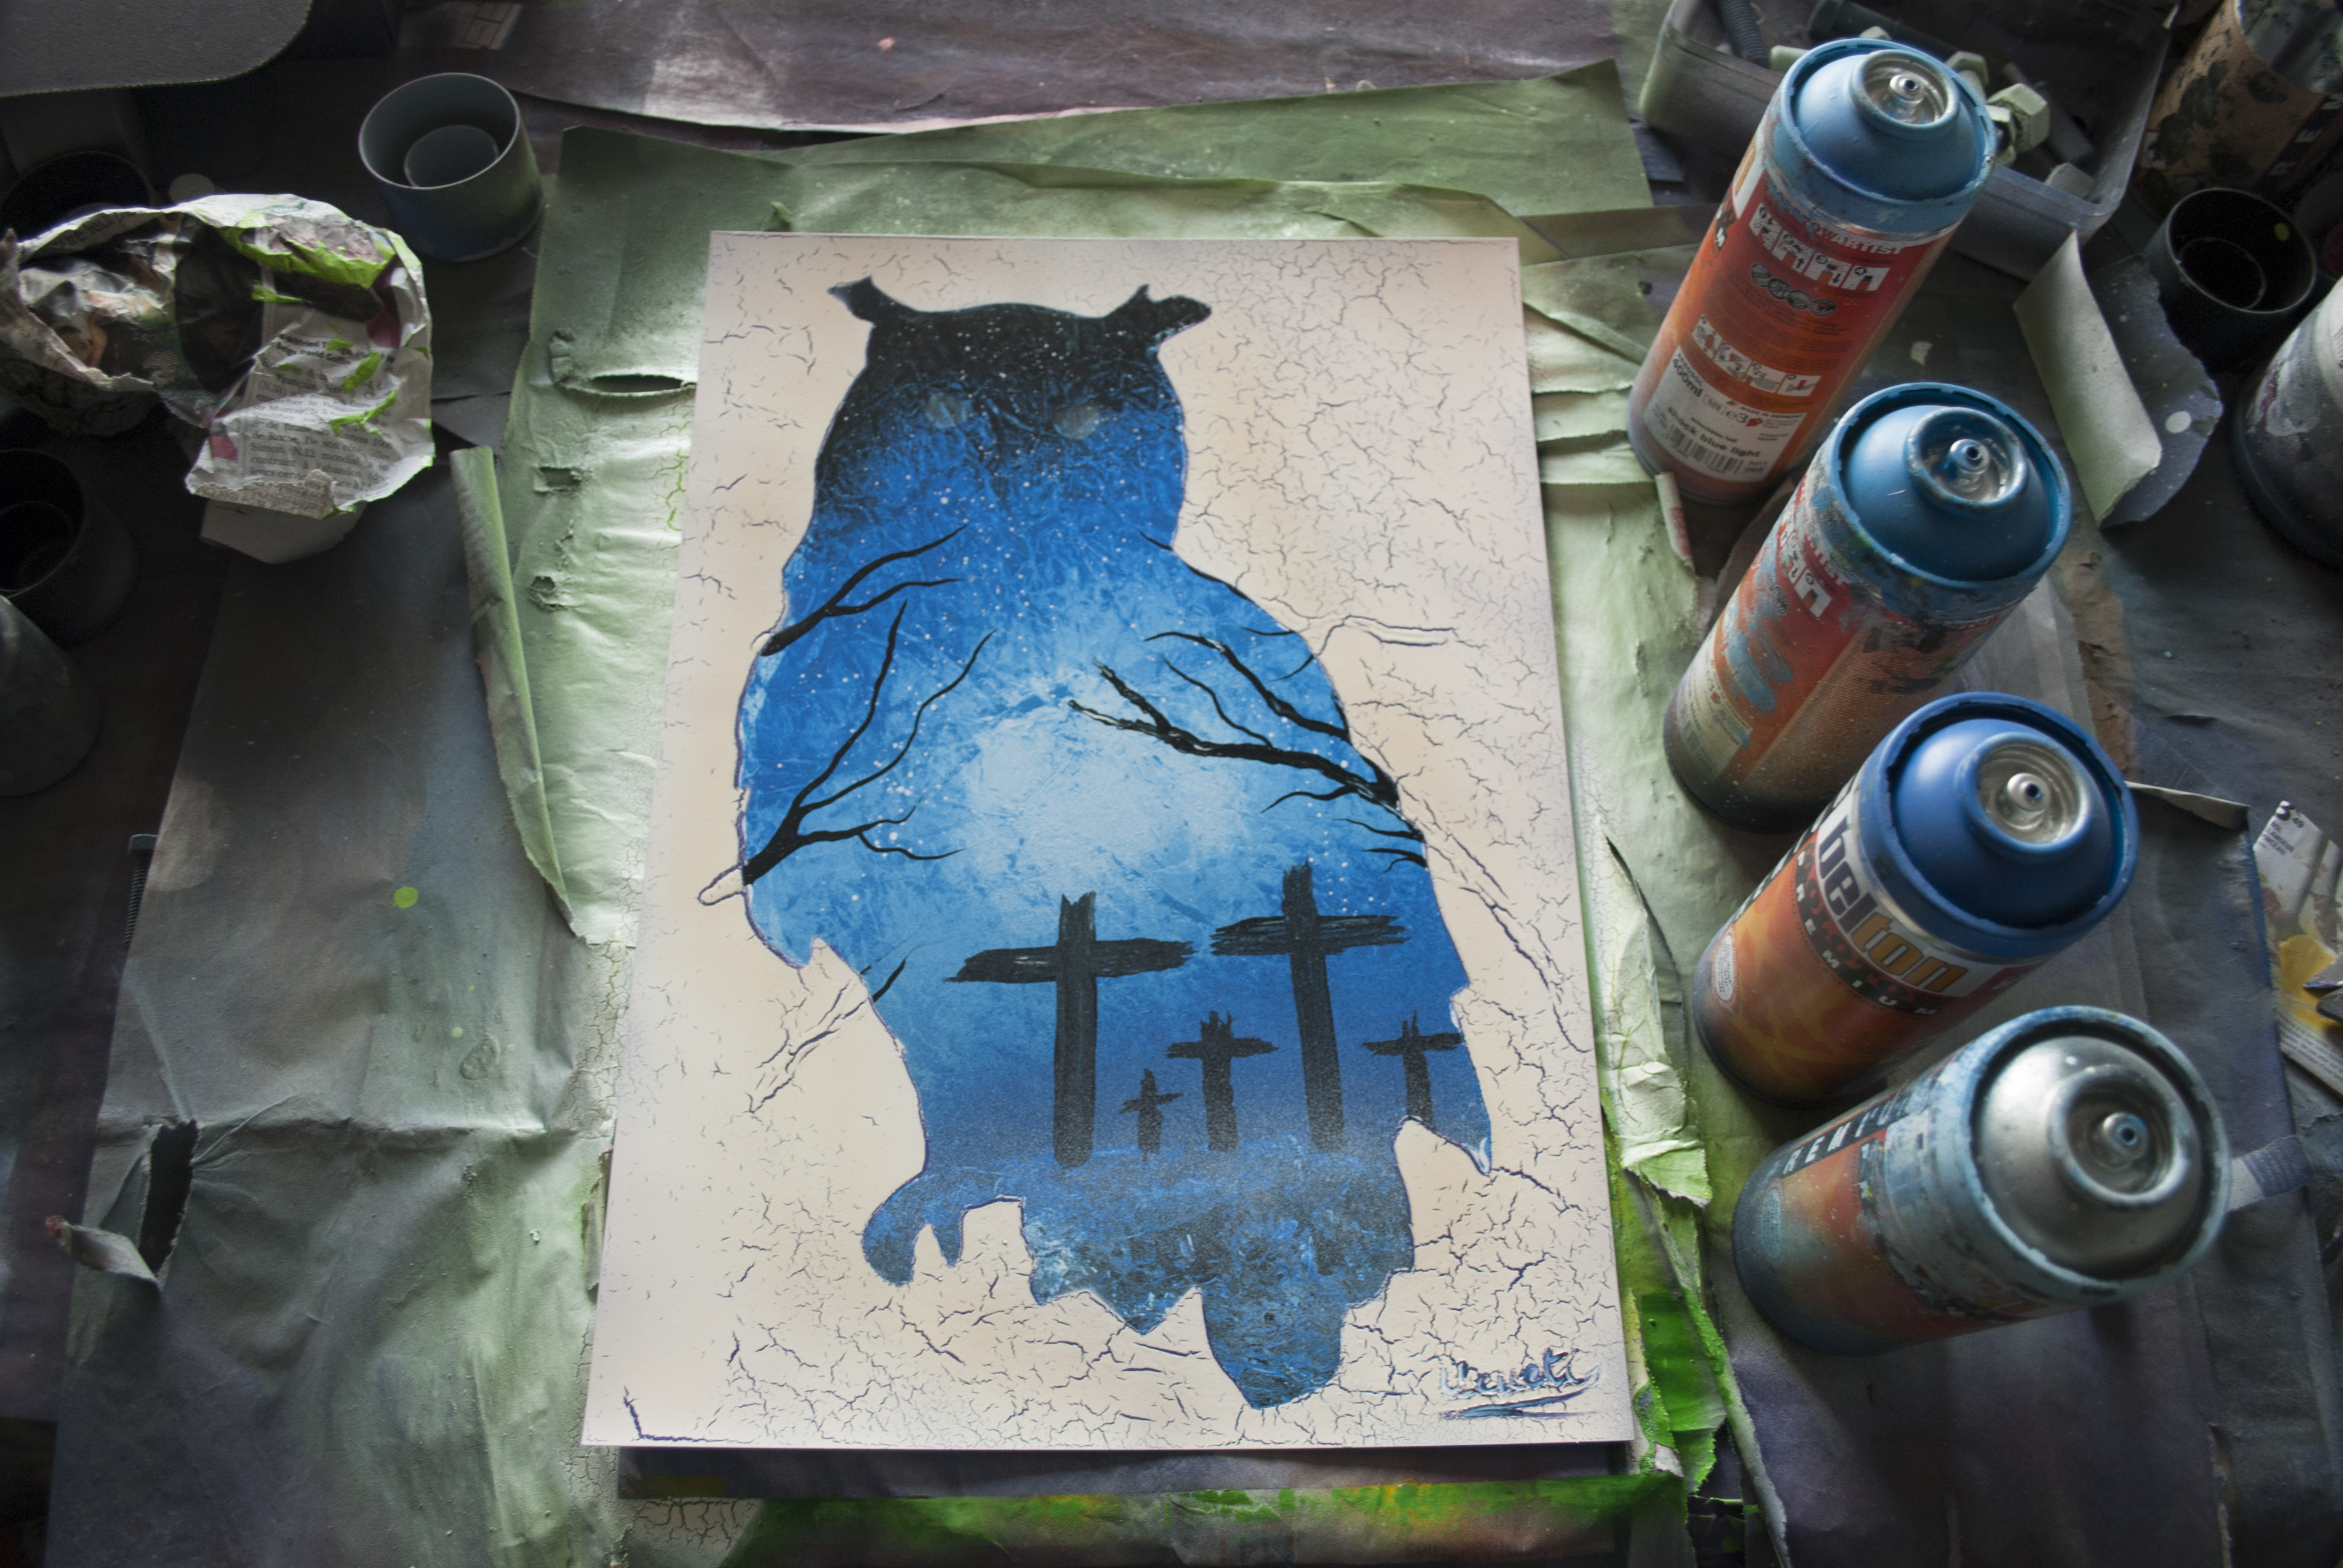 Threatening Owl spray paint art By Ucuetis